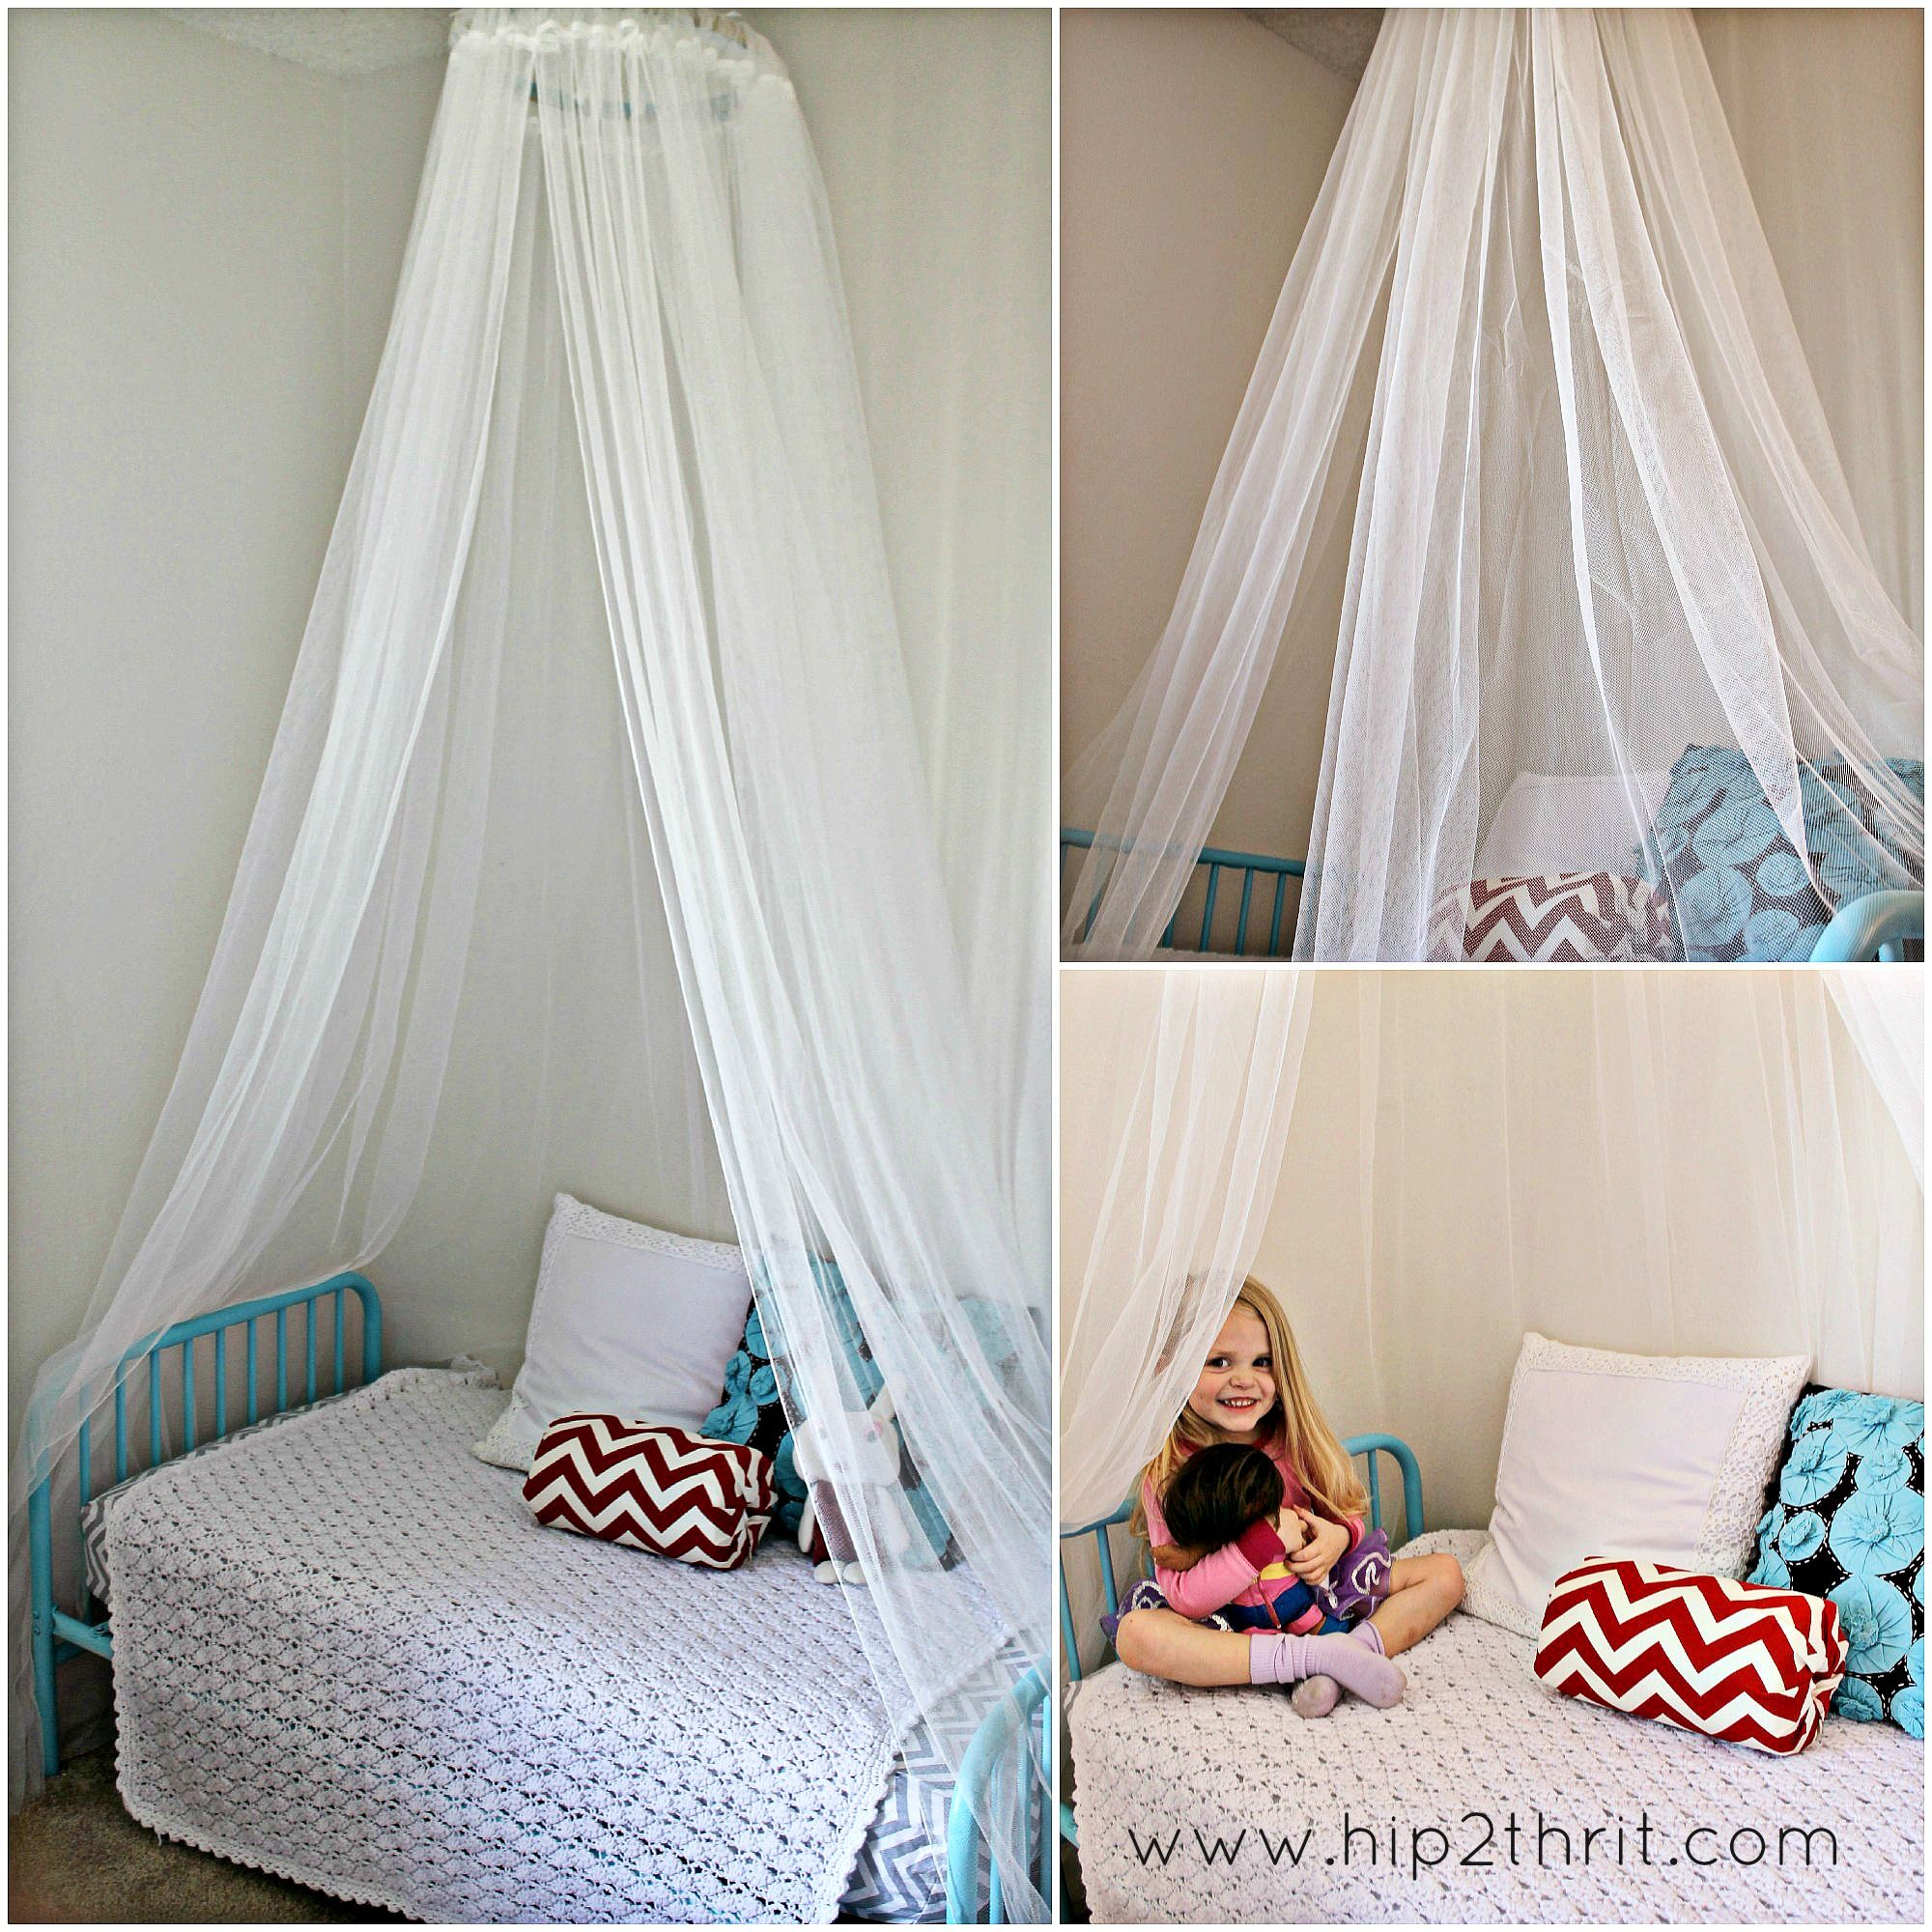 DIY Canopy bed using a embroidery hoop. Perfect to keep you safe at night  from